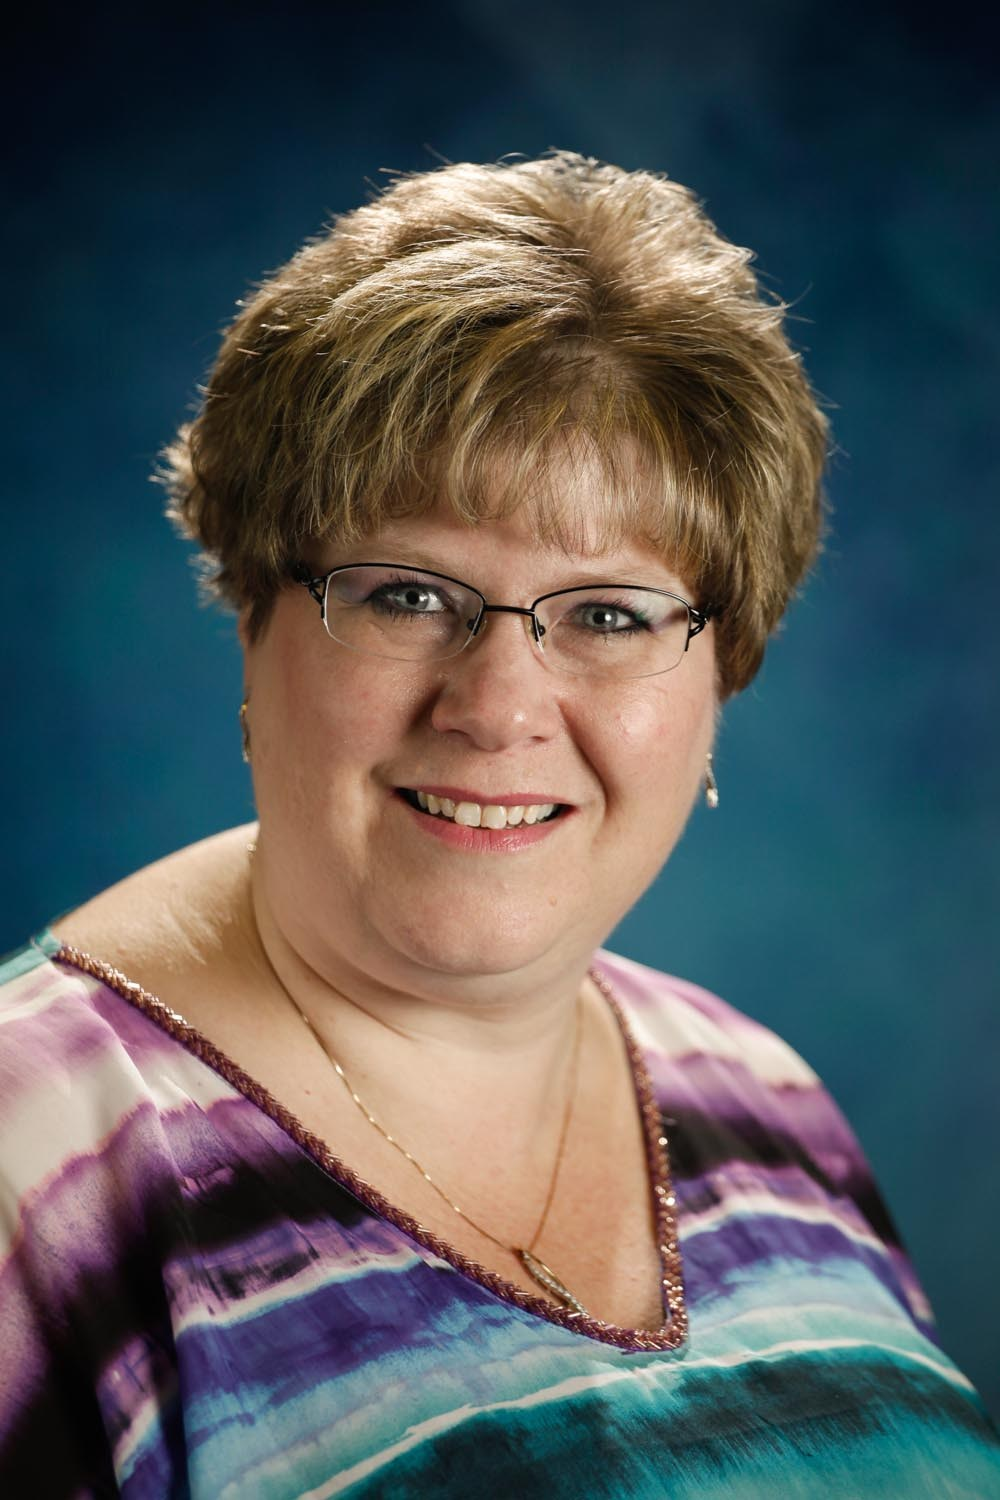 Kristi Bentley, Business Manager